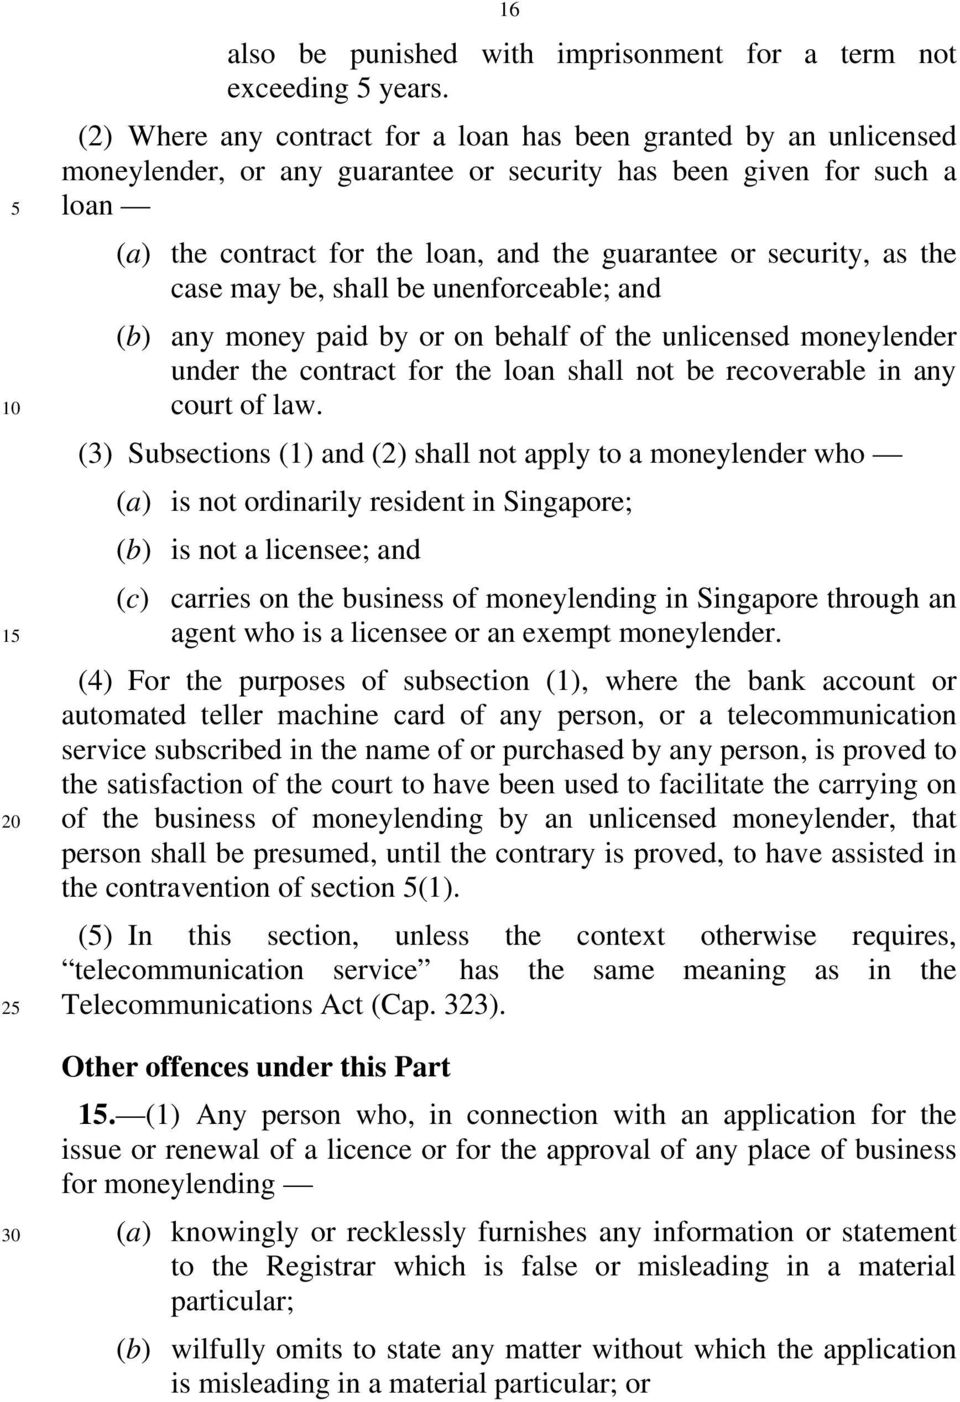 security, as the case may be, shall be unenforceable; and (b) any money paid by or on behalf of the unlicensed moneylender under the contract for the loan shall not be recoverable in any court of law.